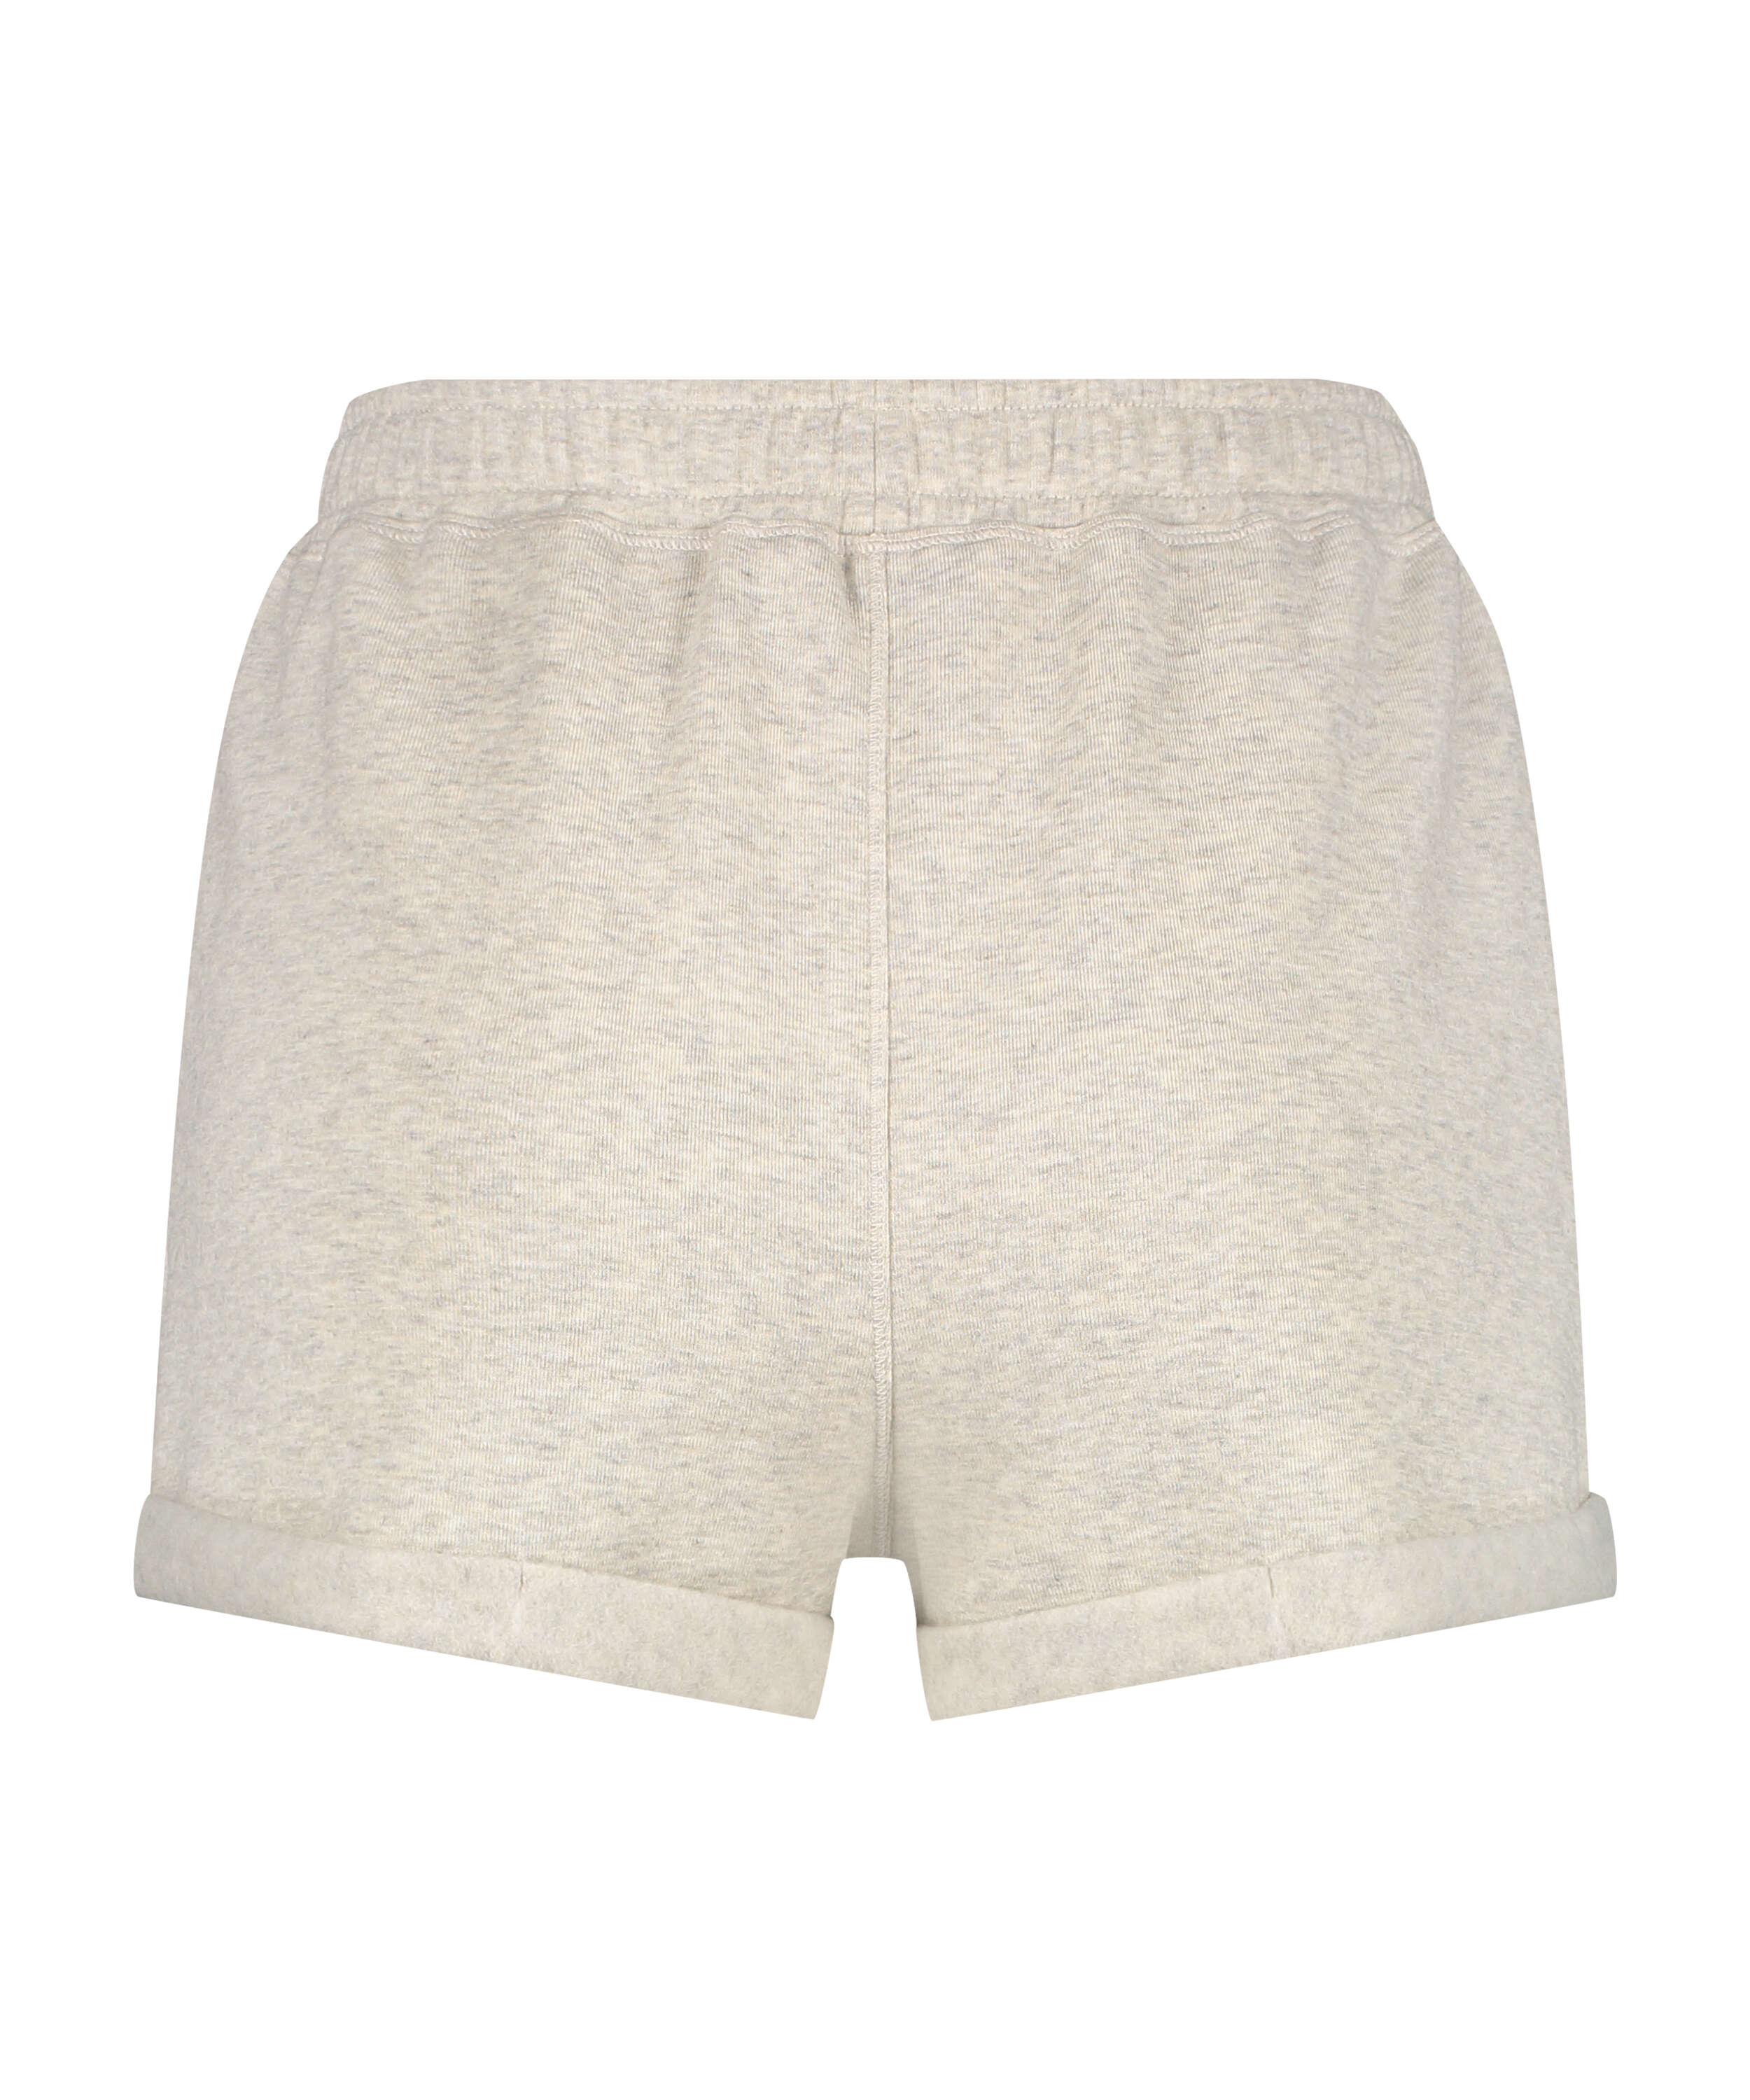 Pantalones cortos Sweat Brushed, Beige, main